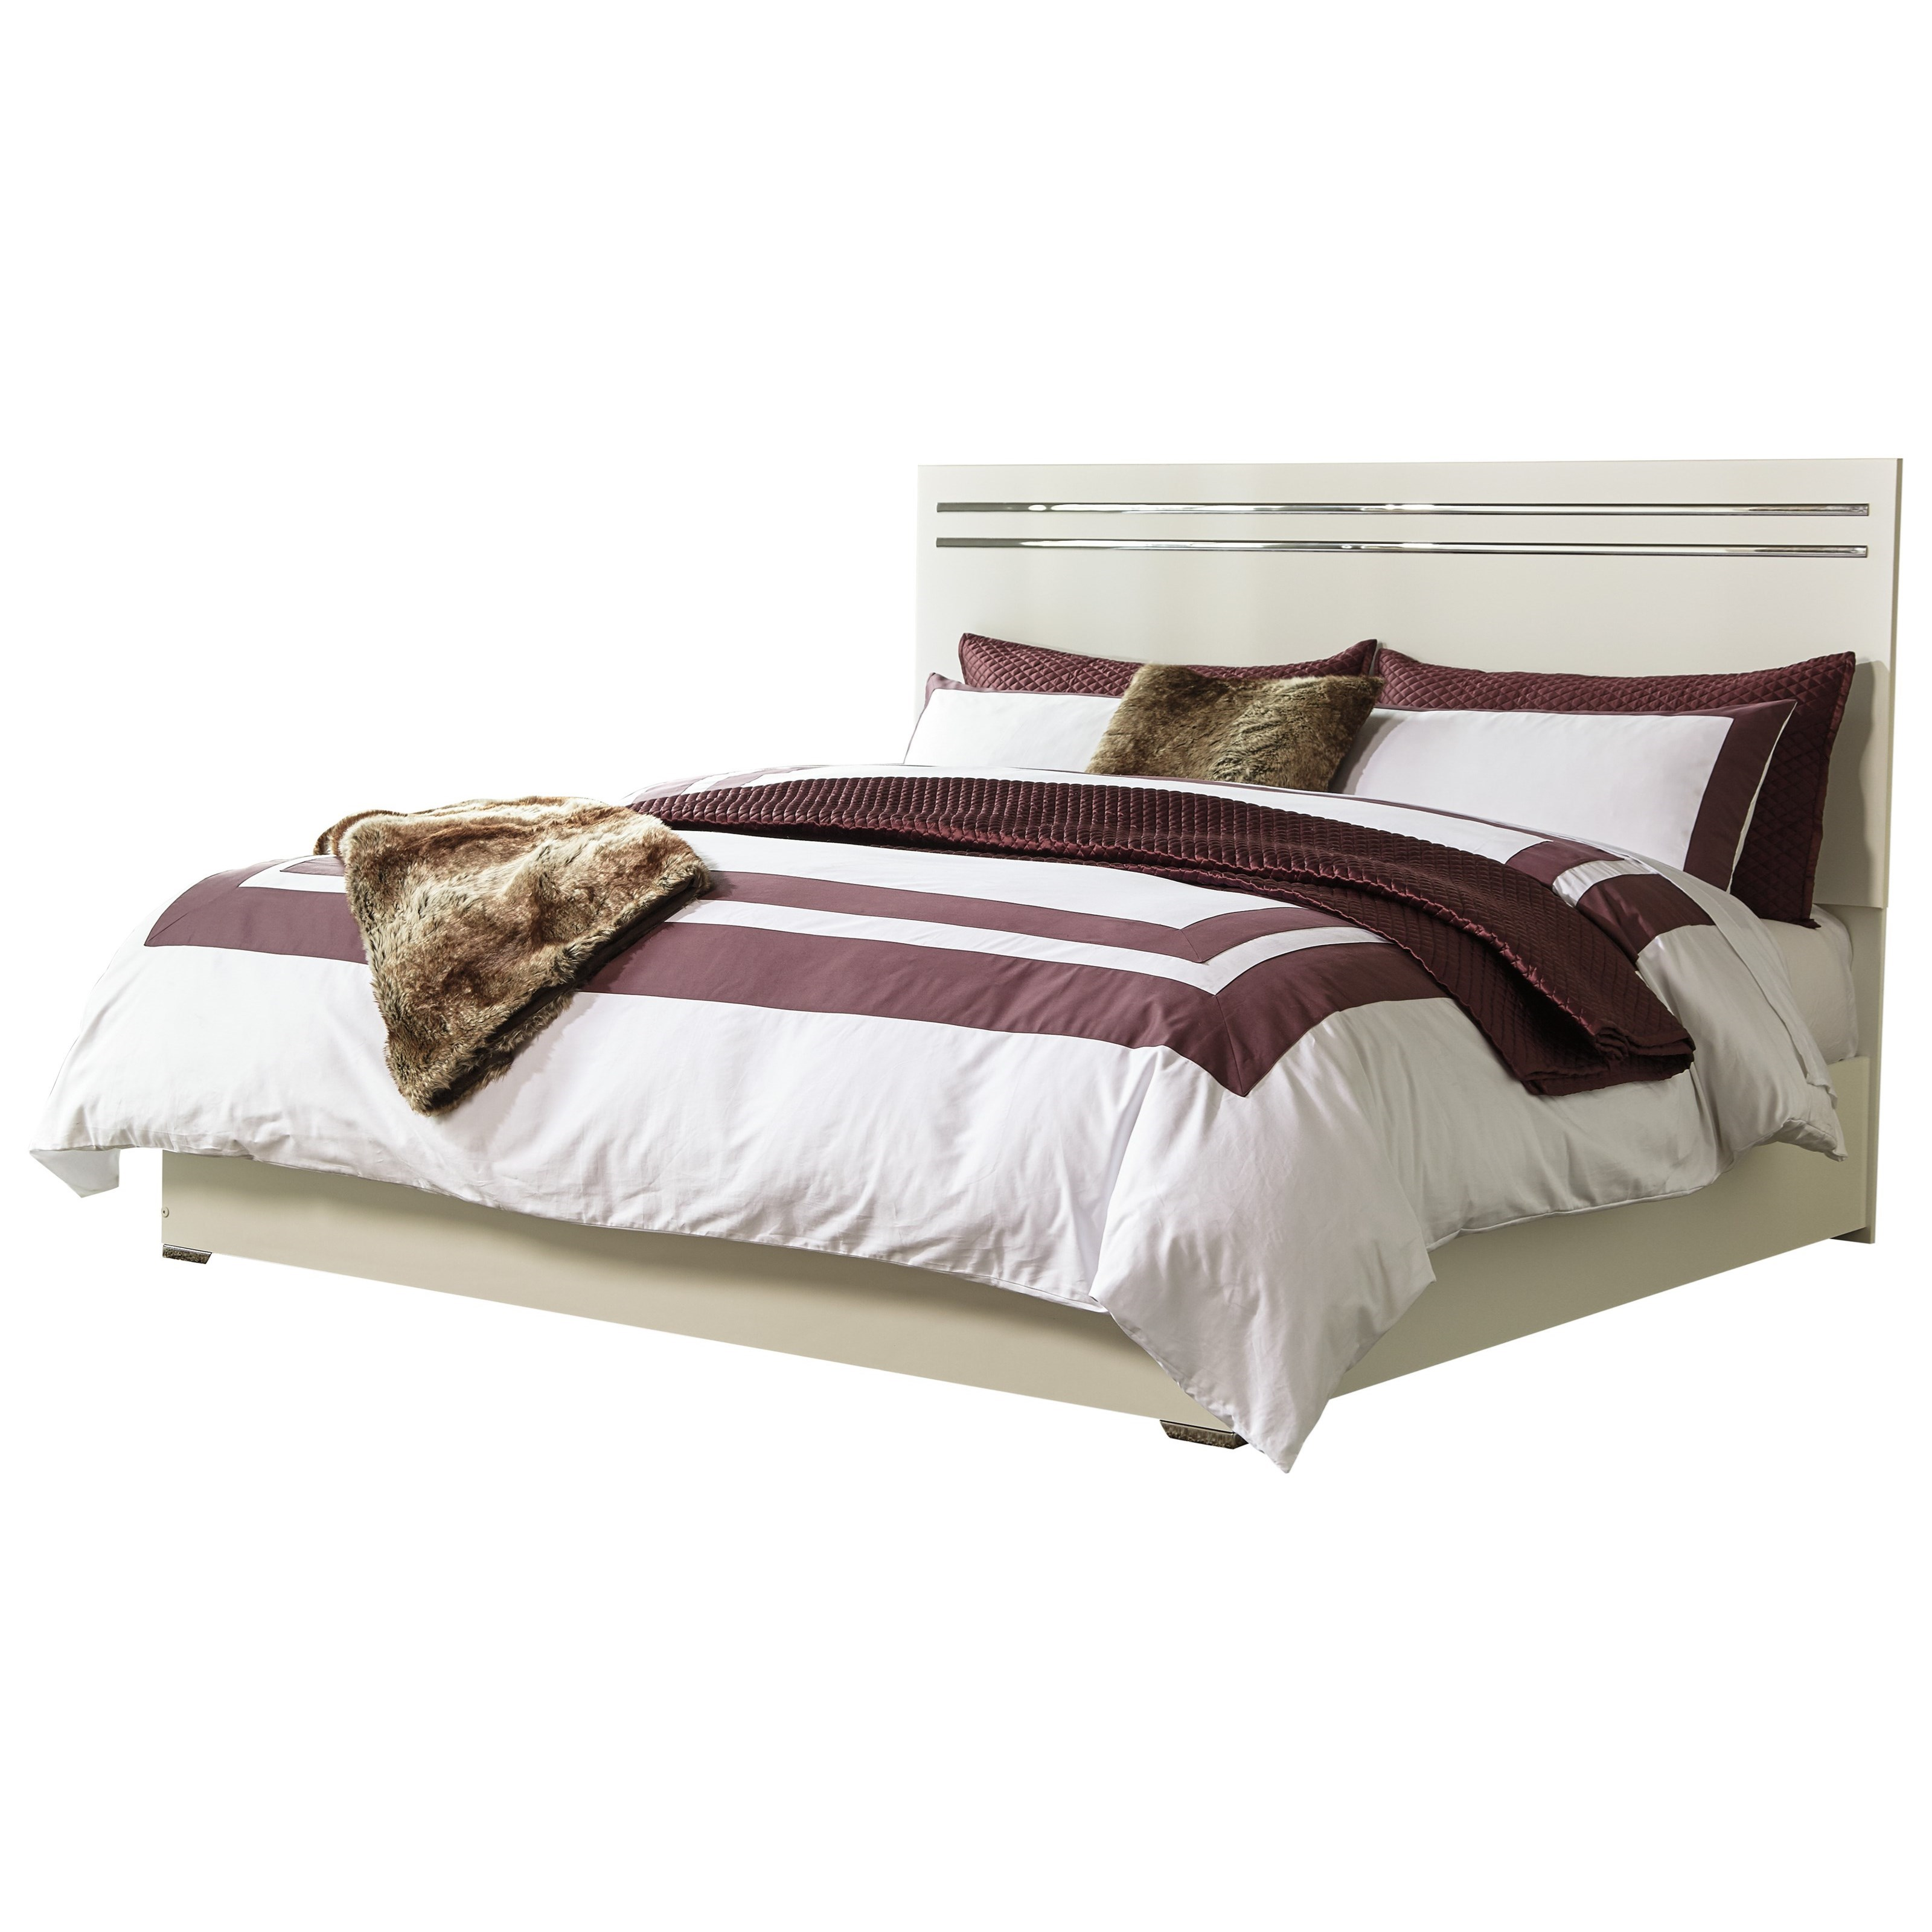 Signature Design by Ashley Brillaney King Bed - Item Number: B209-58-56